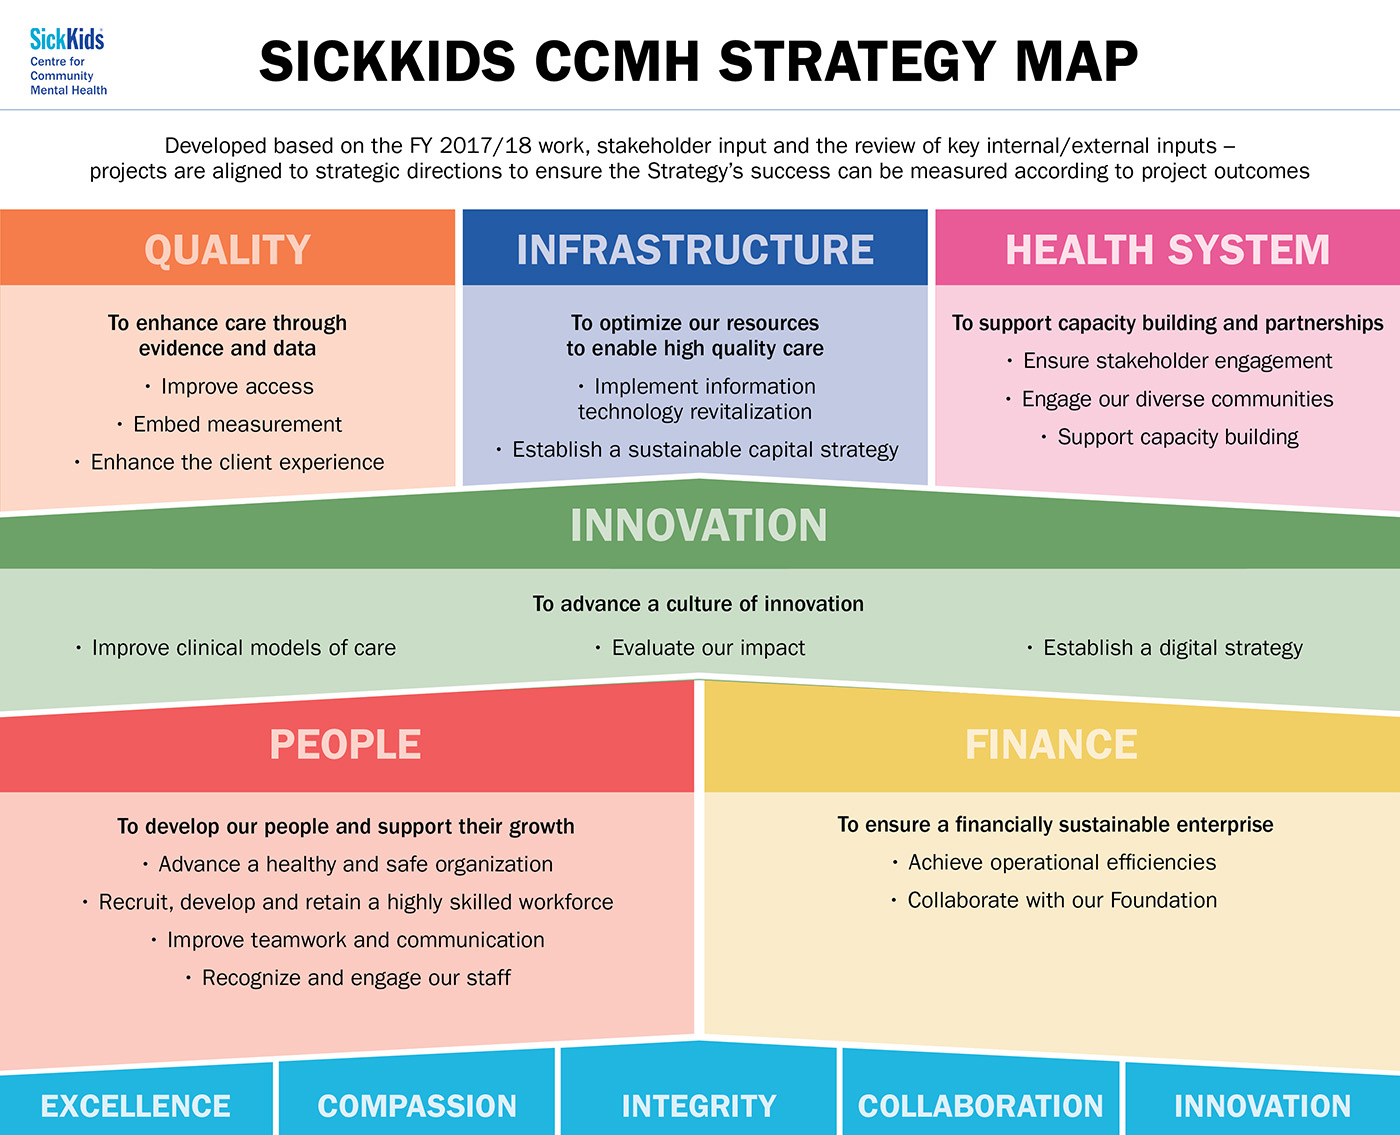 SickKids CCMH Strategy Map Quality, Infrastructure, Health System, Innovation, People, Finance